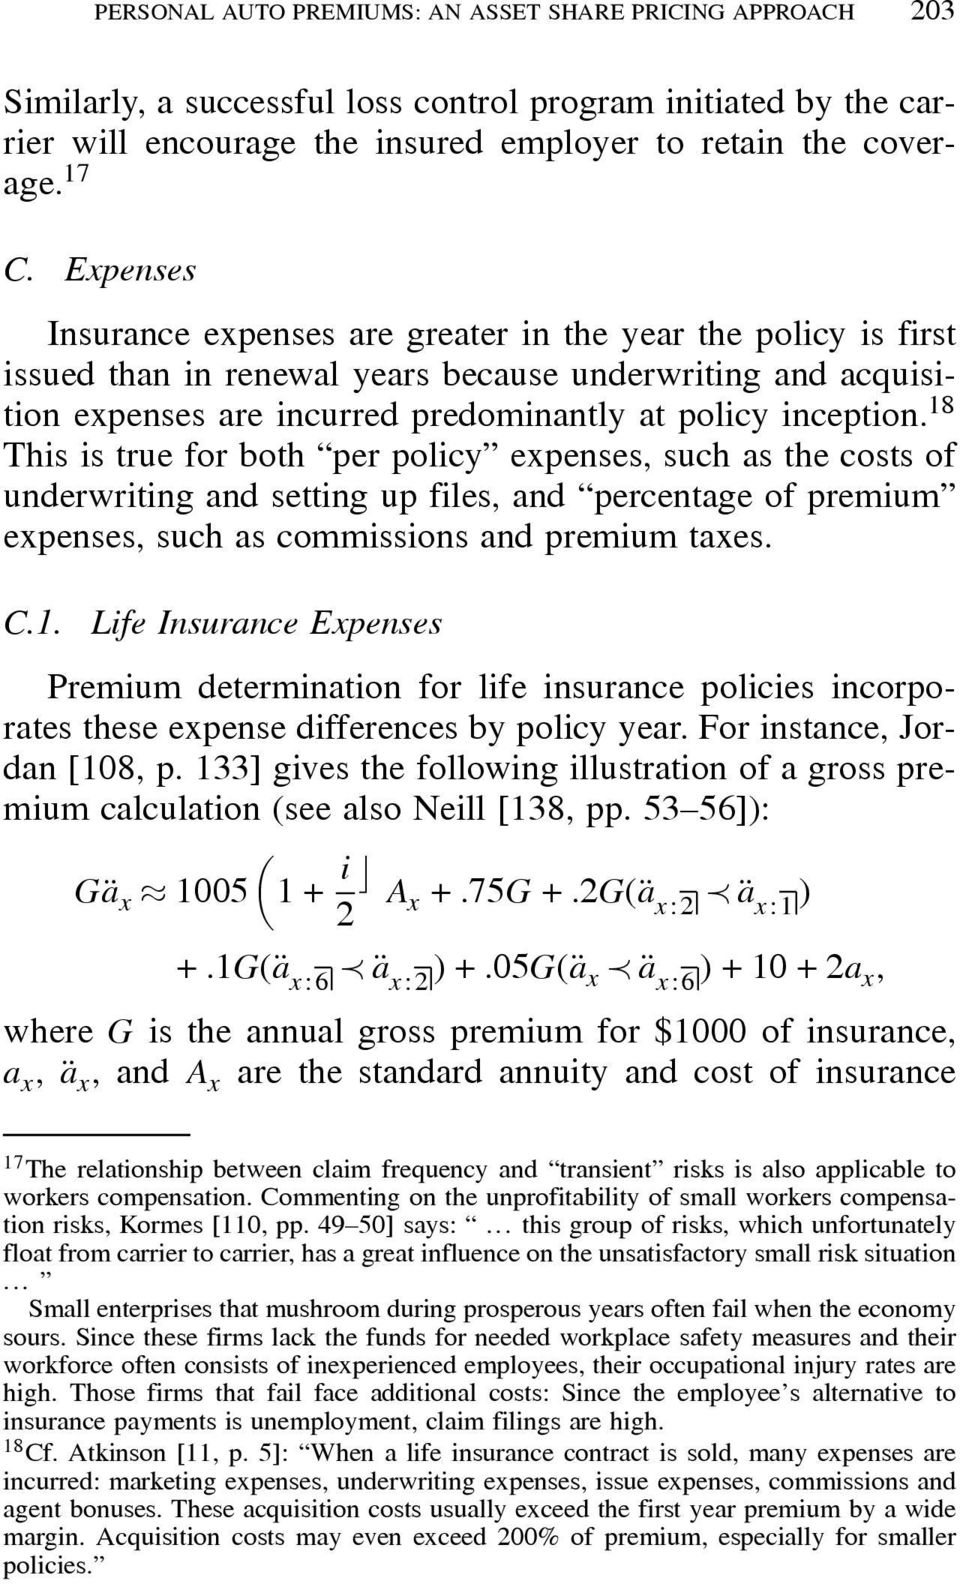 18 This is true for both per policy expenses, such as the costs of underwriting and setting up files, and percentage of premium expenses, such as commissions and premium taxes. C.1. Life Insurance Expenses Premium determination for life insurance policies incorporates these expense differences by policy year.